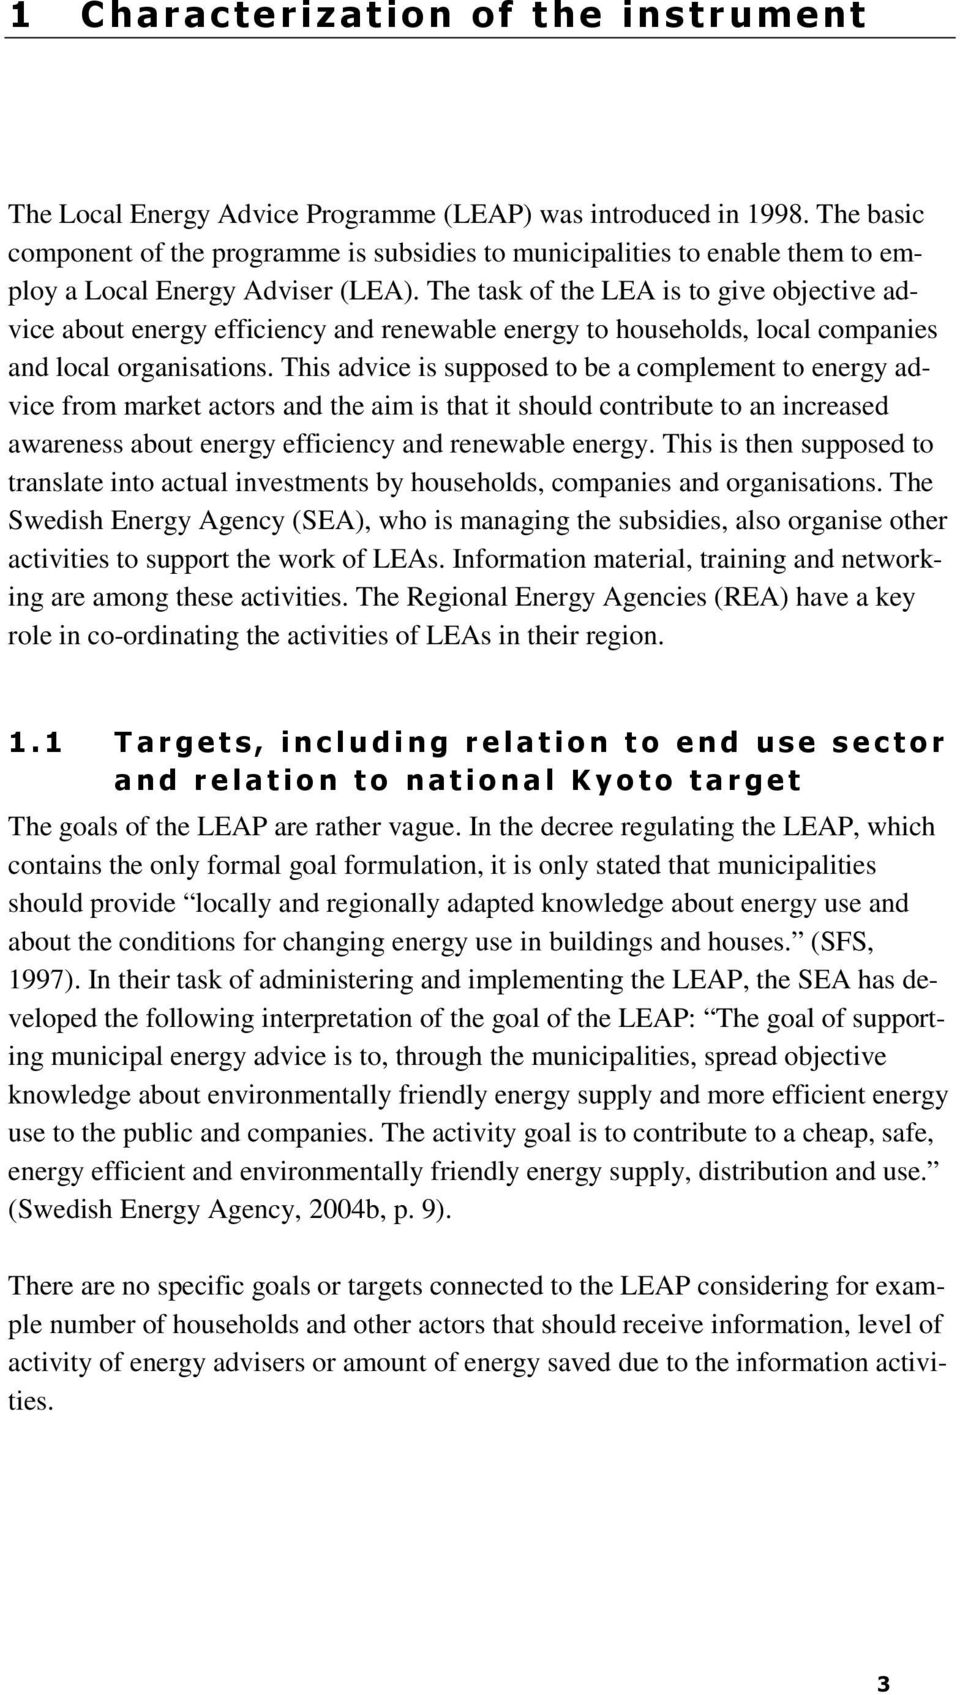 The task of the LEA is to give objective advice about energy efficiency and renewable energy to households, local companies and local organisations.